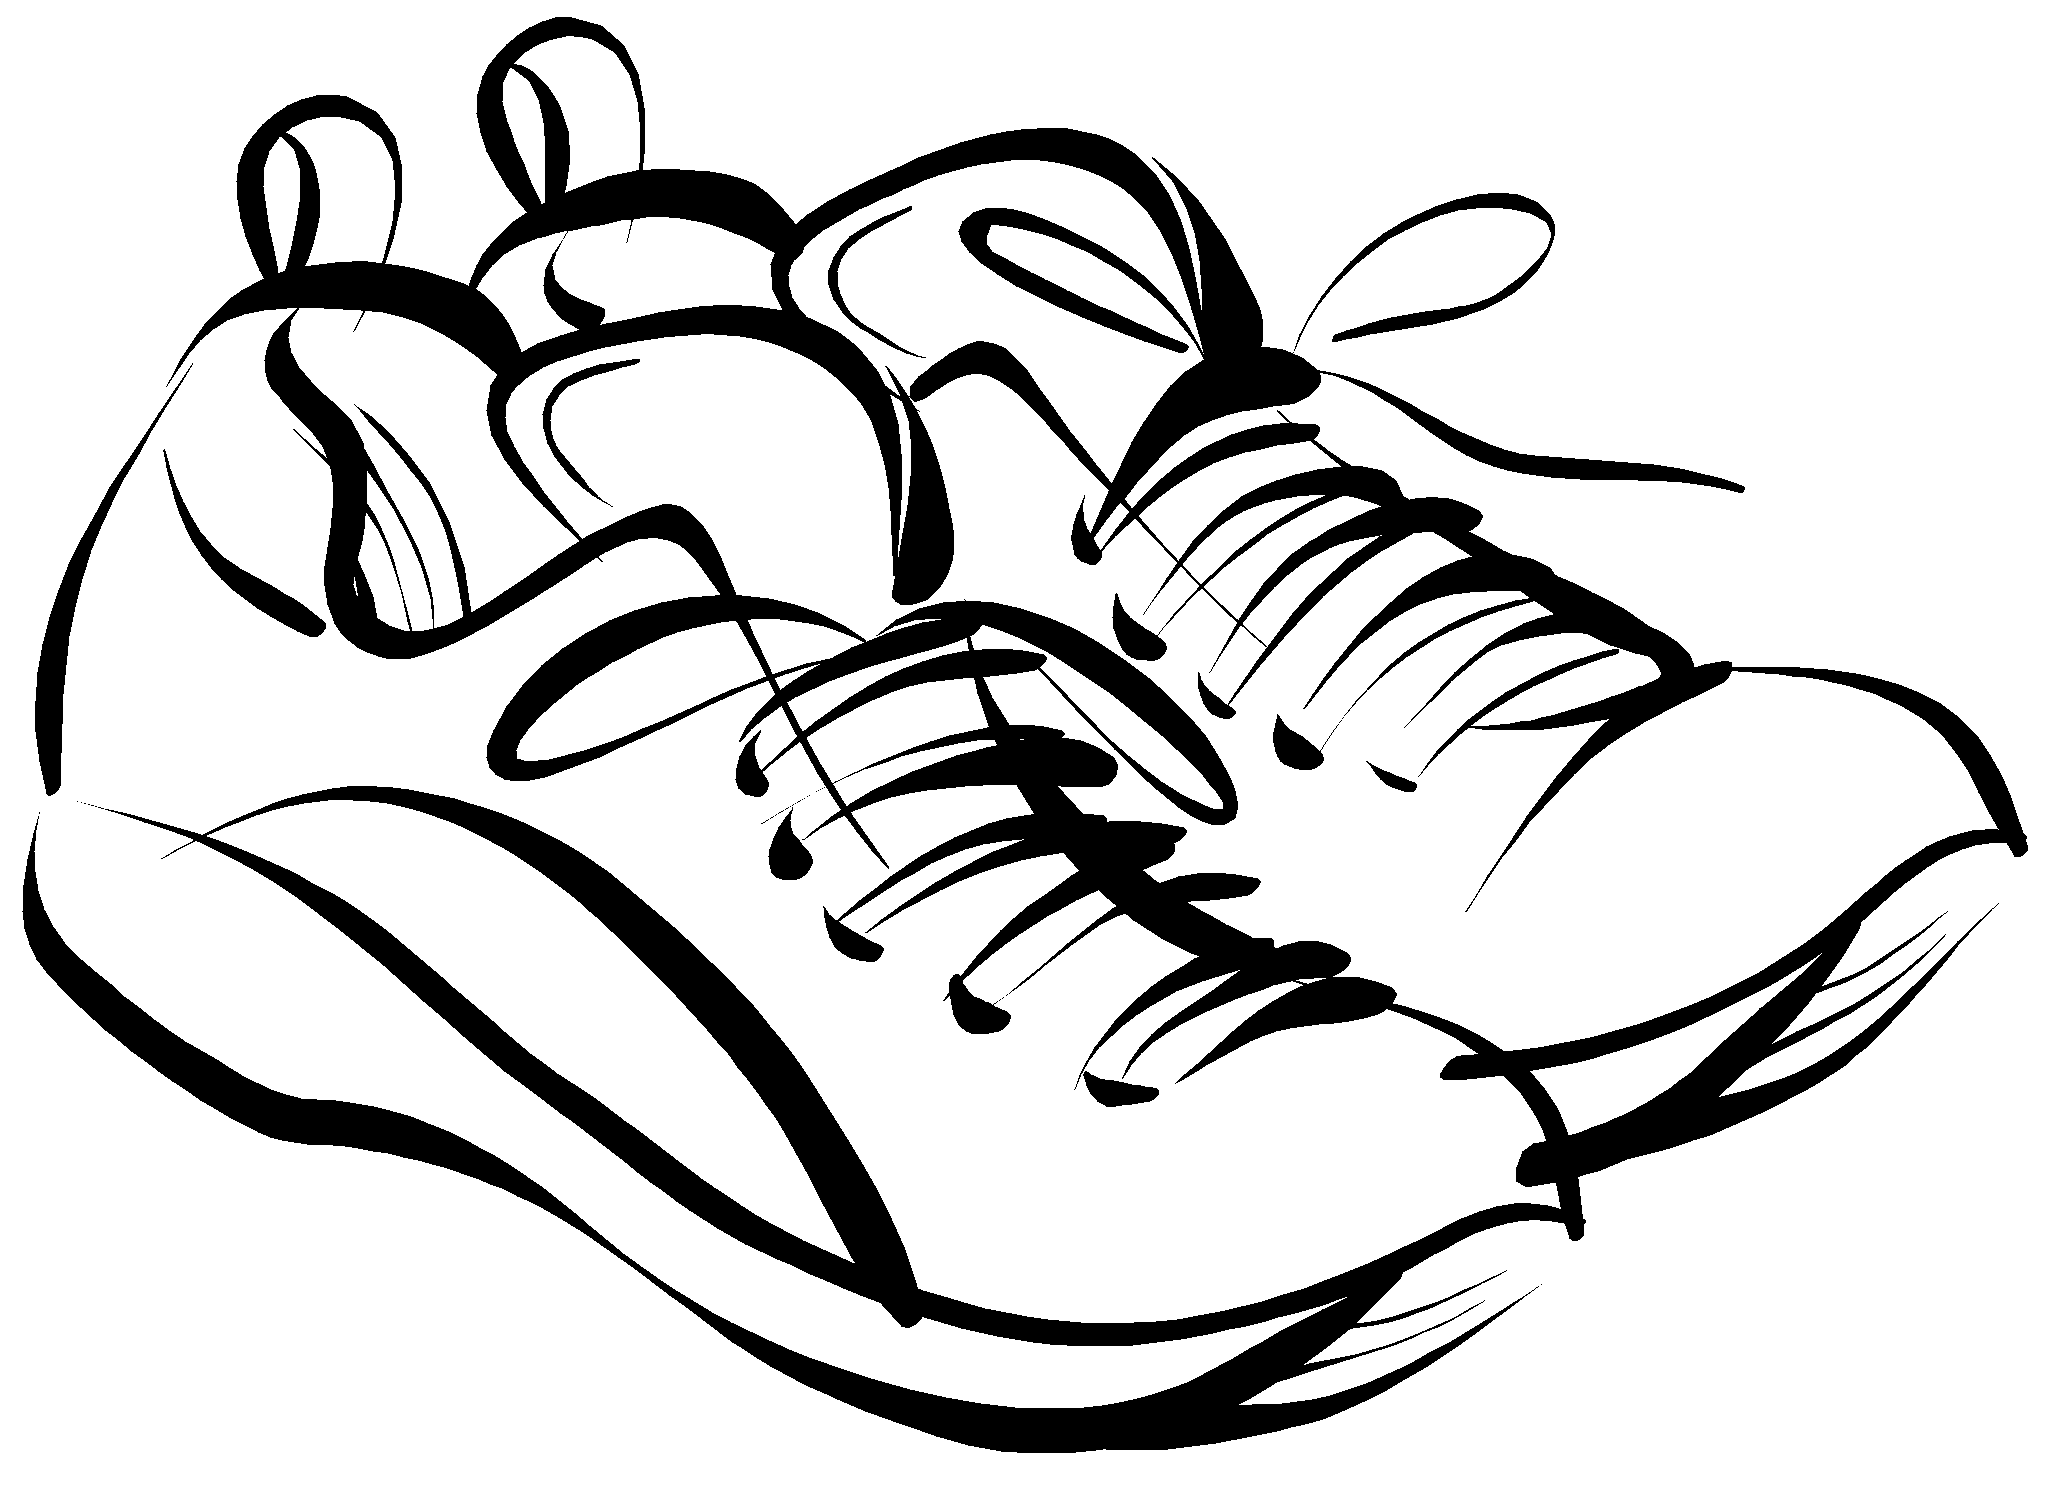 Running Shoes Clipart - Clipart Suggest